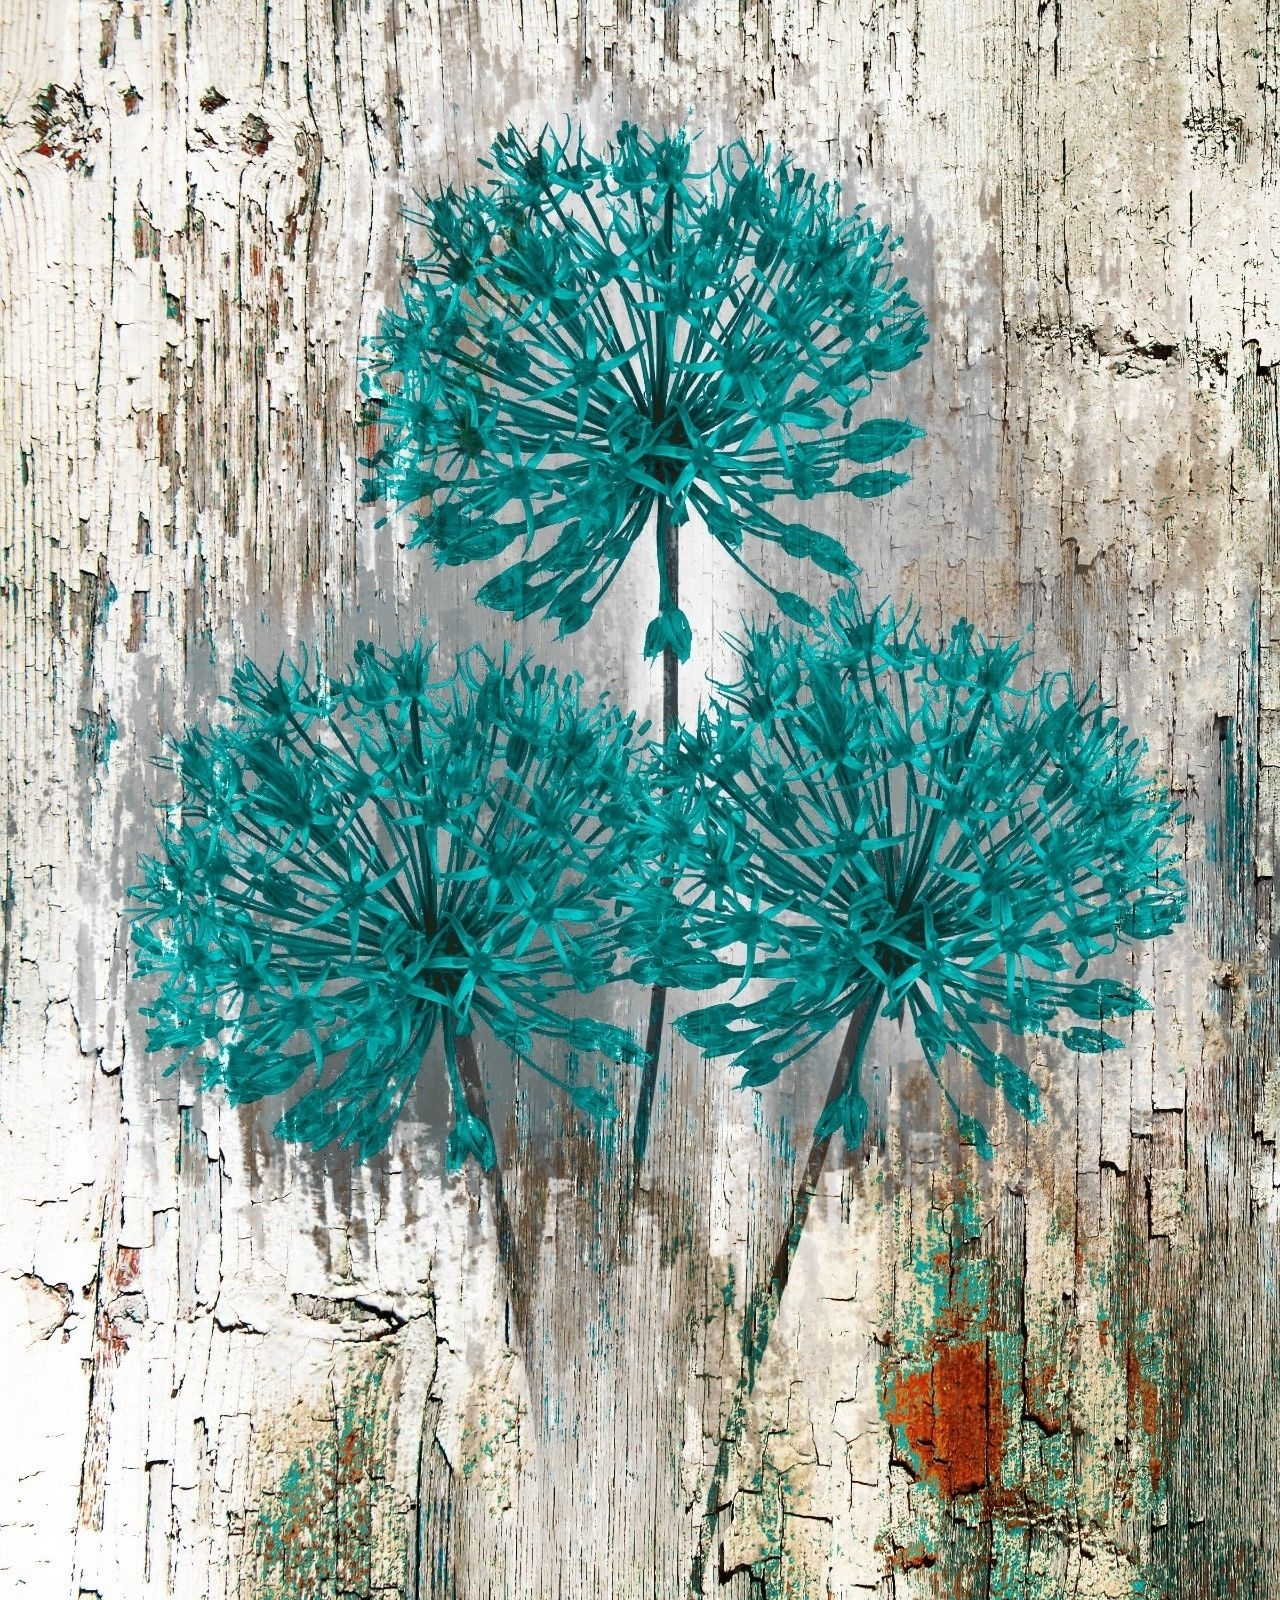 Teal Brown Rustic Distressed Flower Wall Art Home Decor Matted With Best And Newest Teal Wall Art (Gallery 15 of 15)